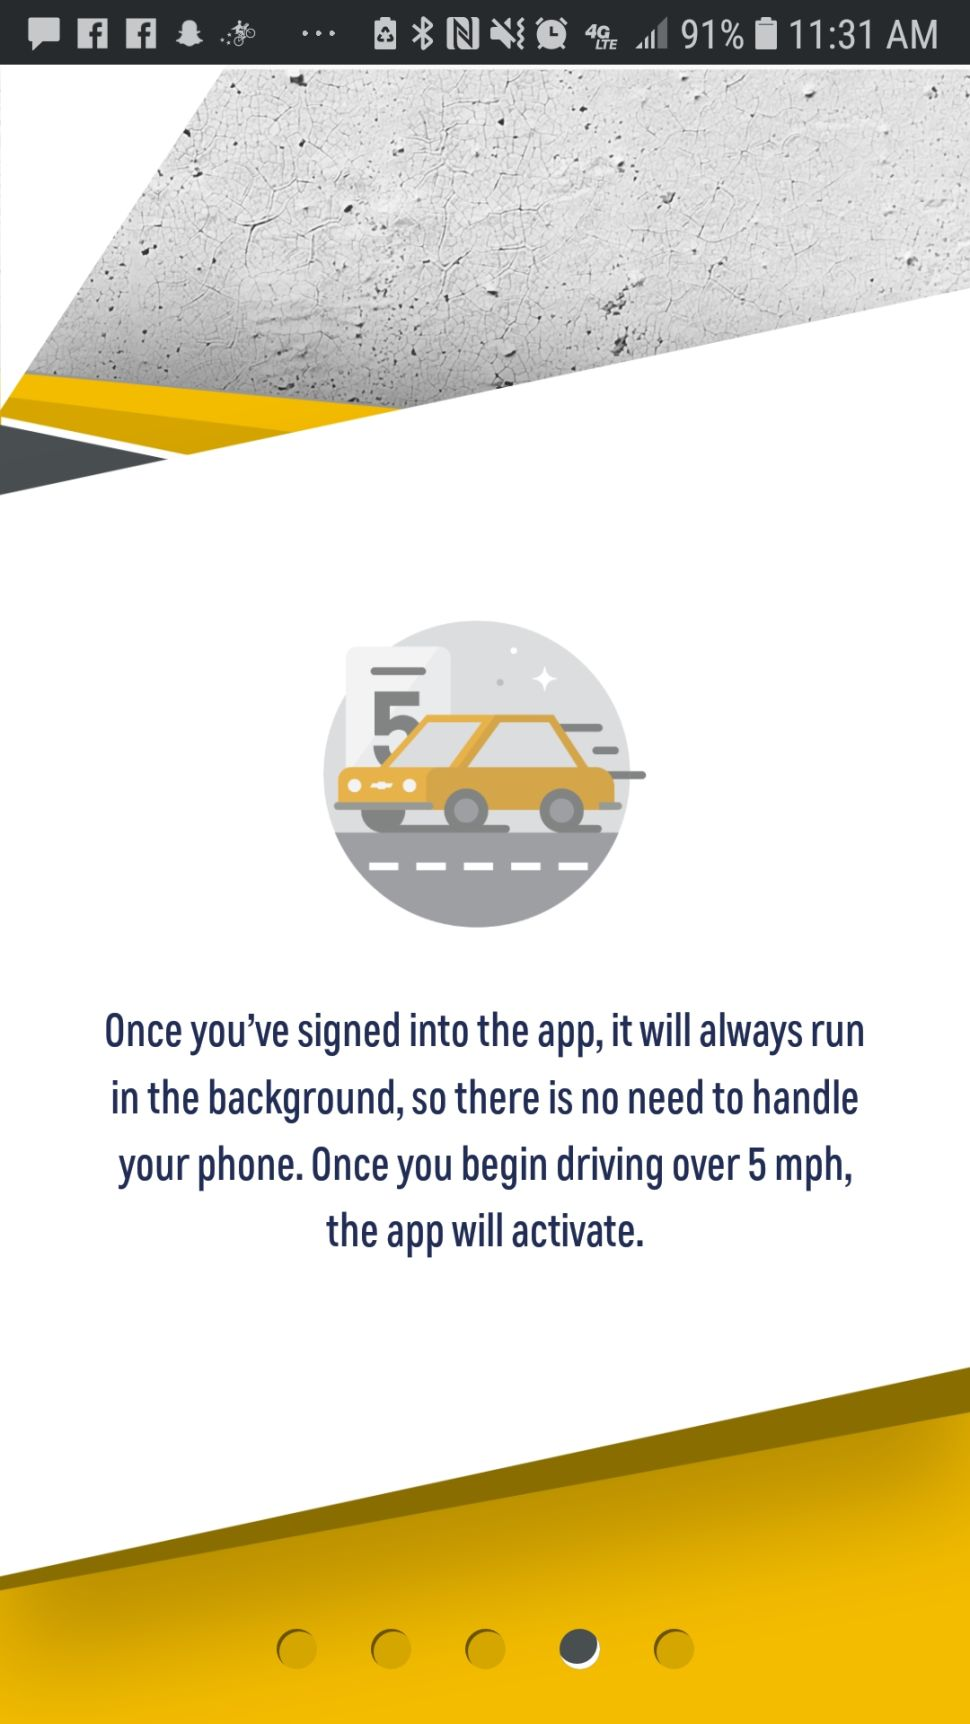 Sorry iPhone users. The Call Me Out app is only available on Android for people who drive over 5 mph.